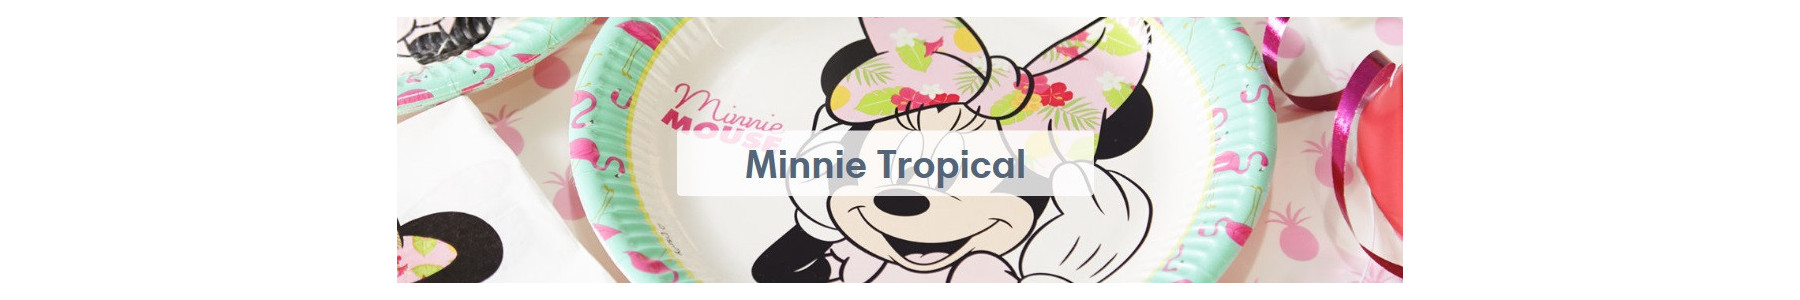 Articole party Minnie Tropical